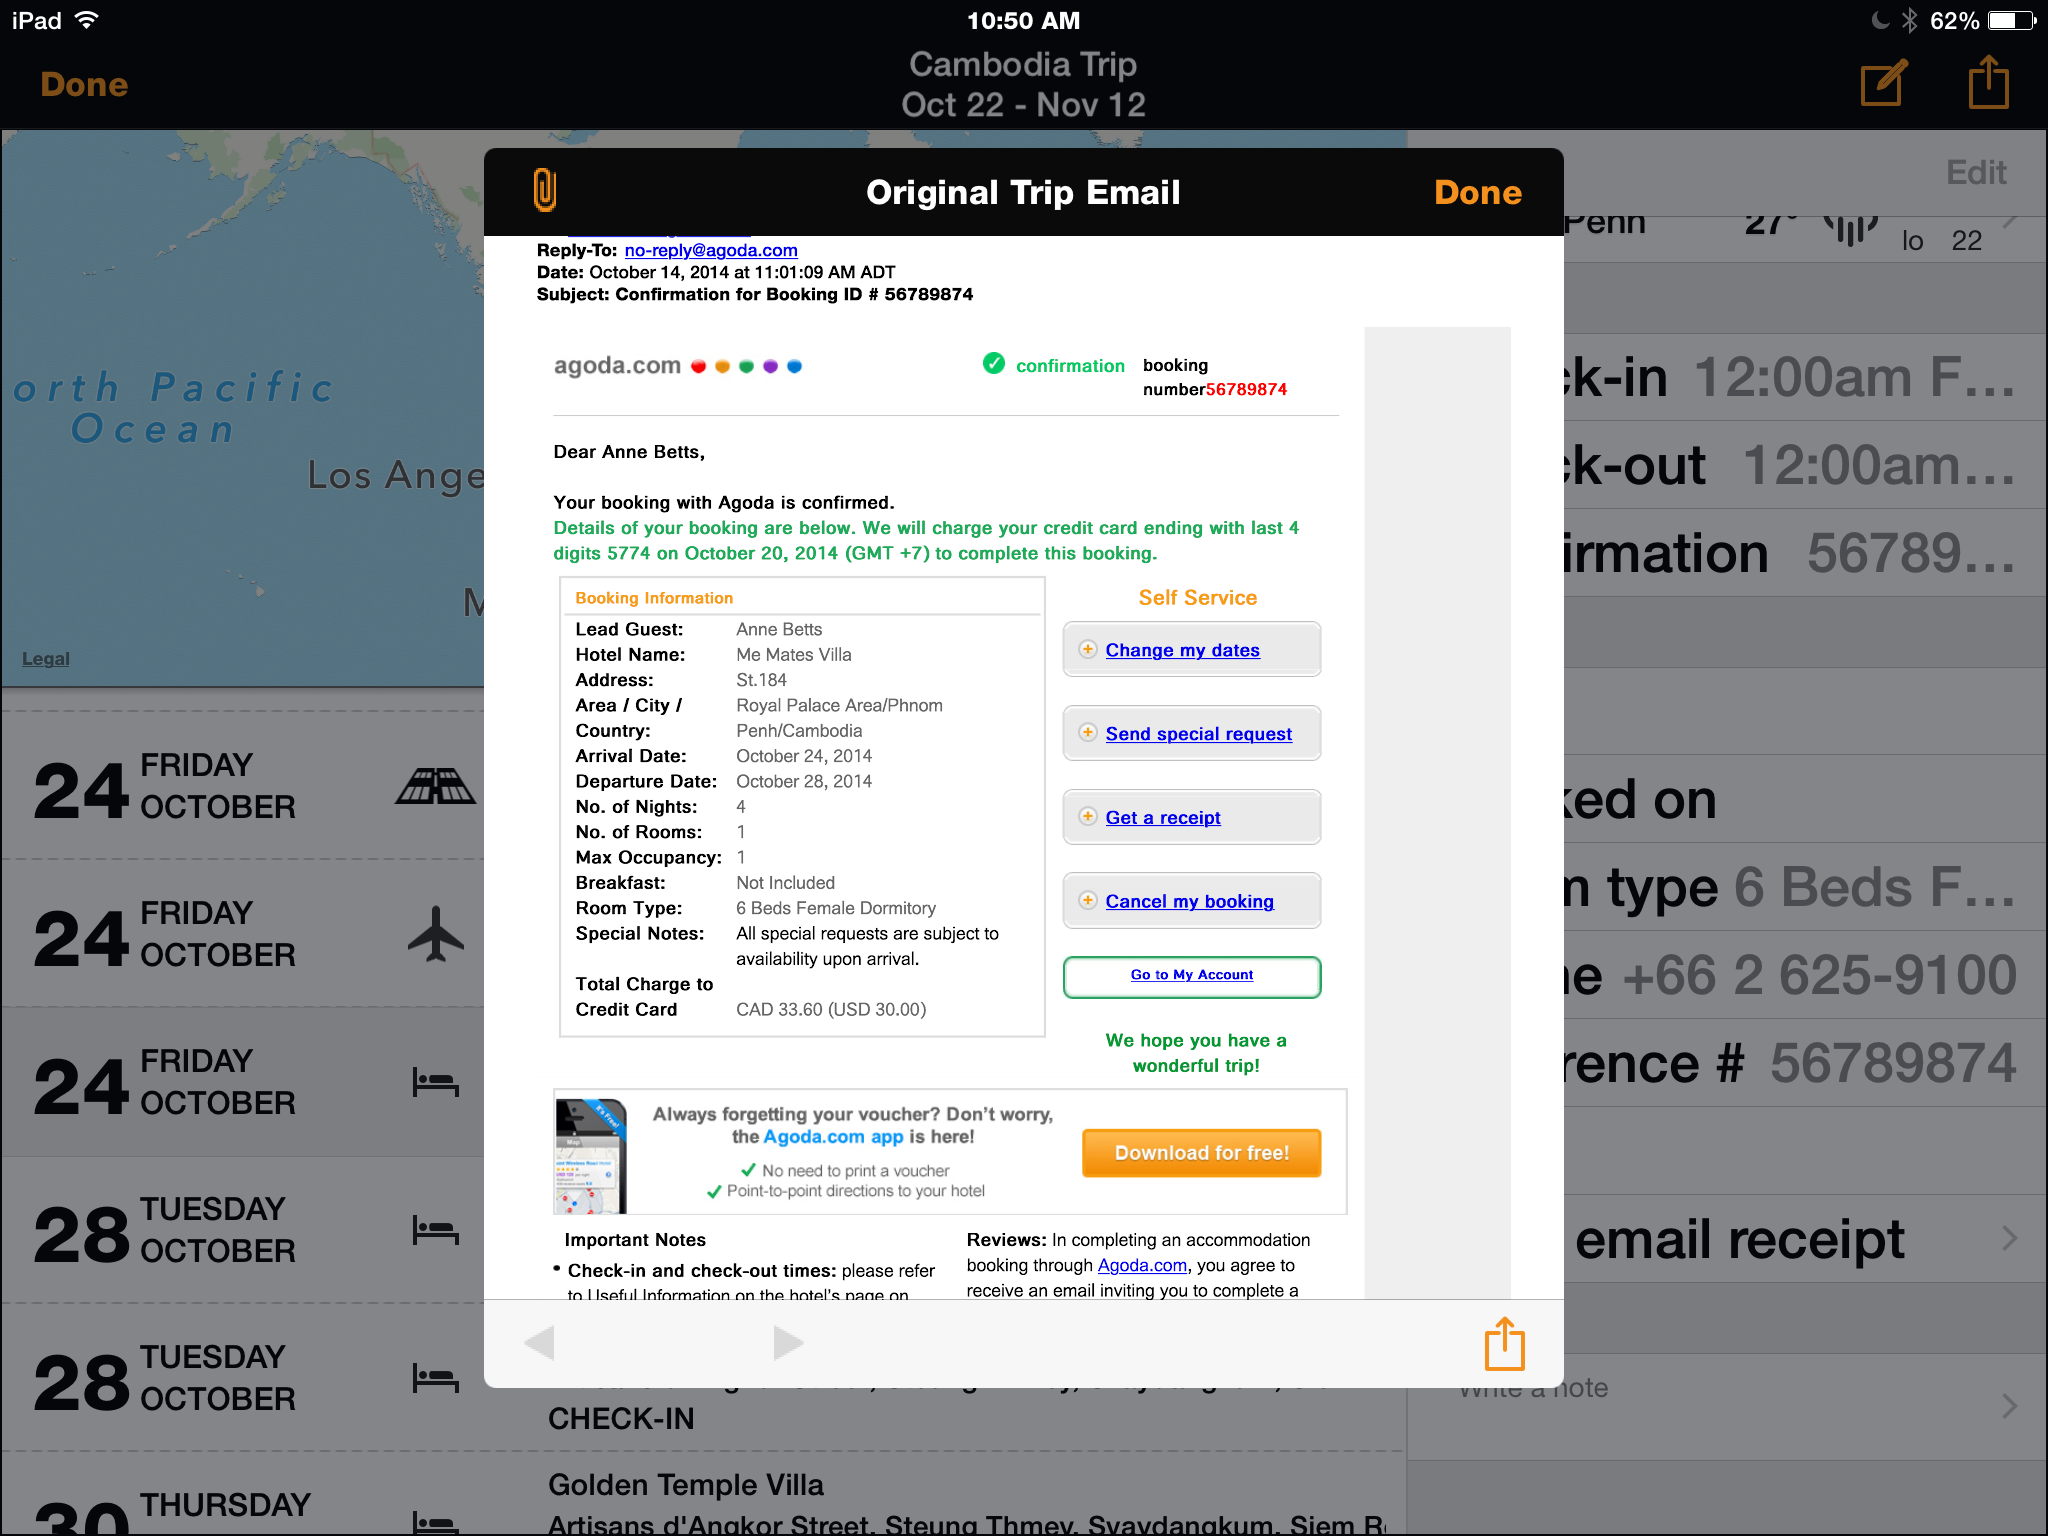 Kayak includes original booking confirmation in itinerary app